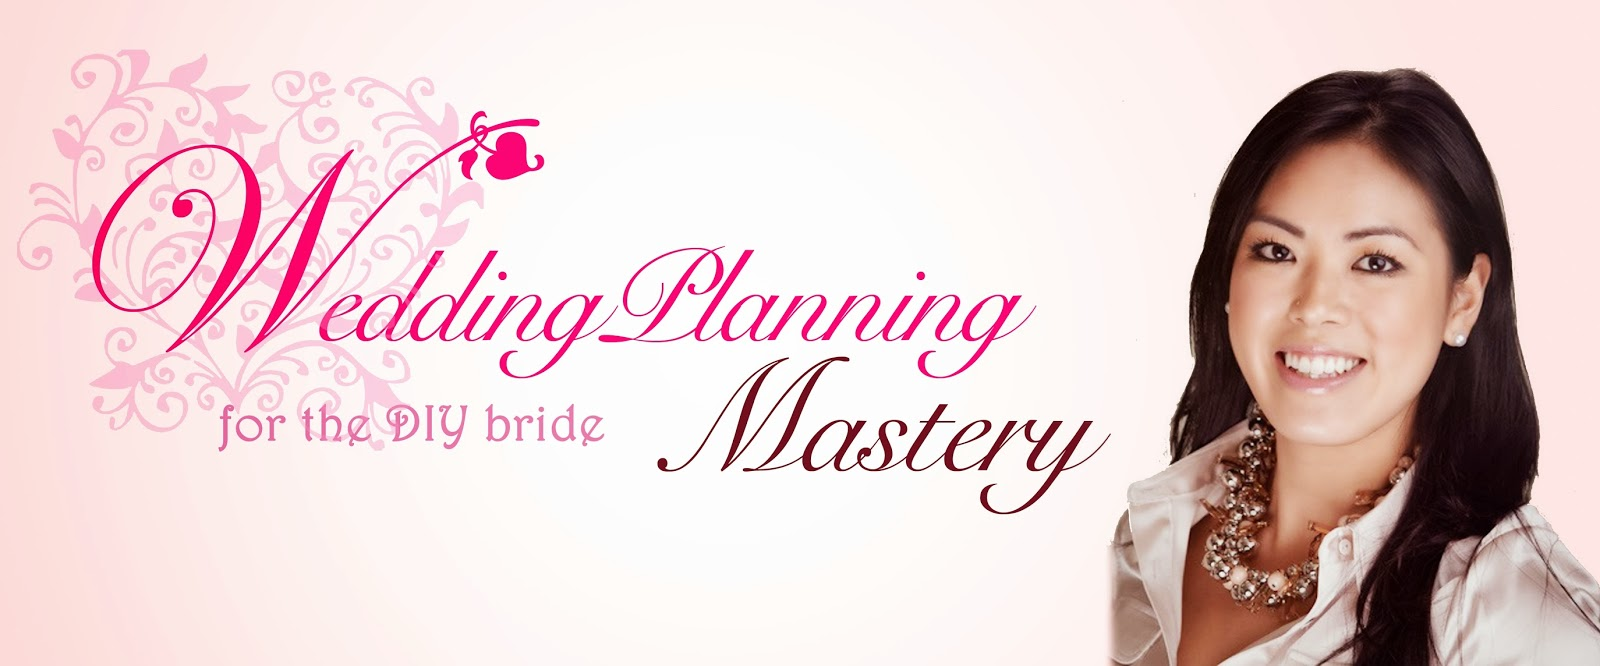 http://weddingplanmastery.com/